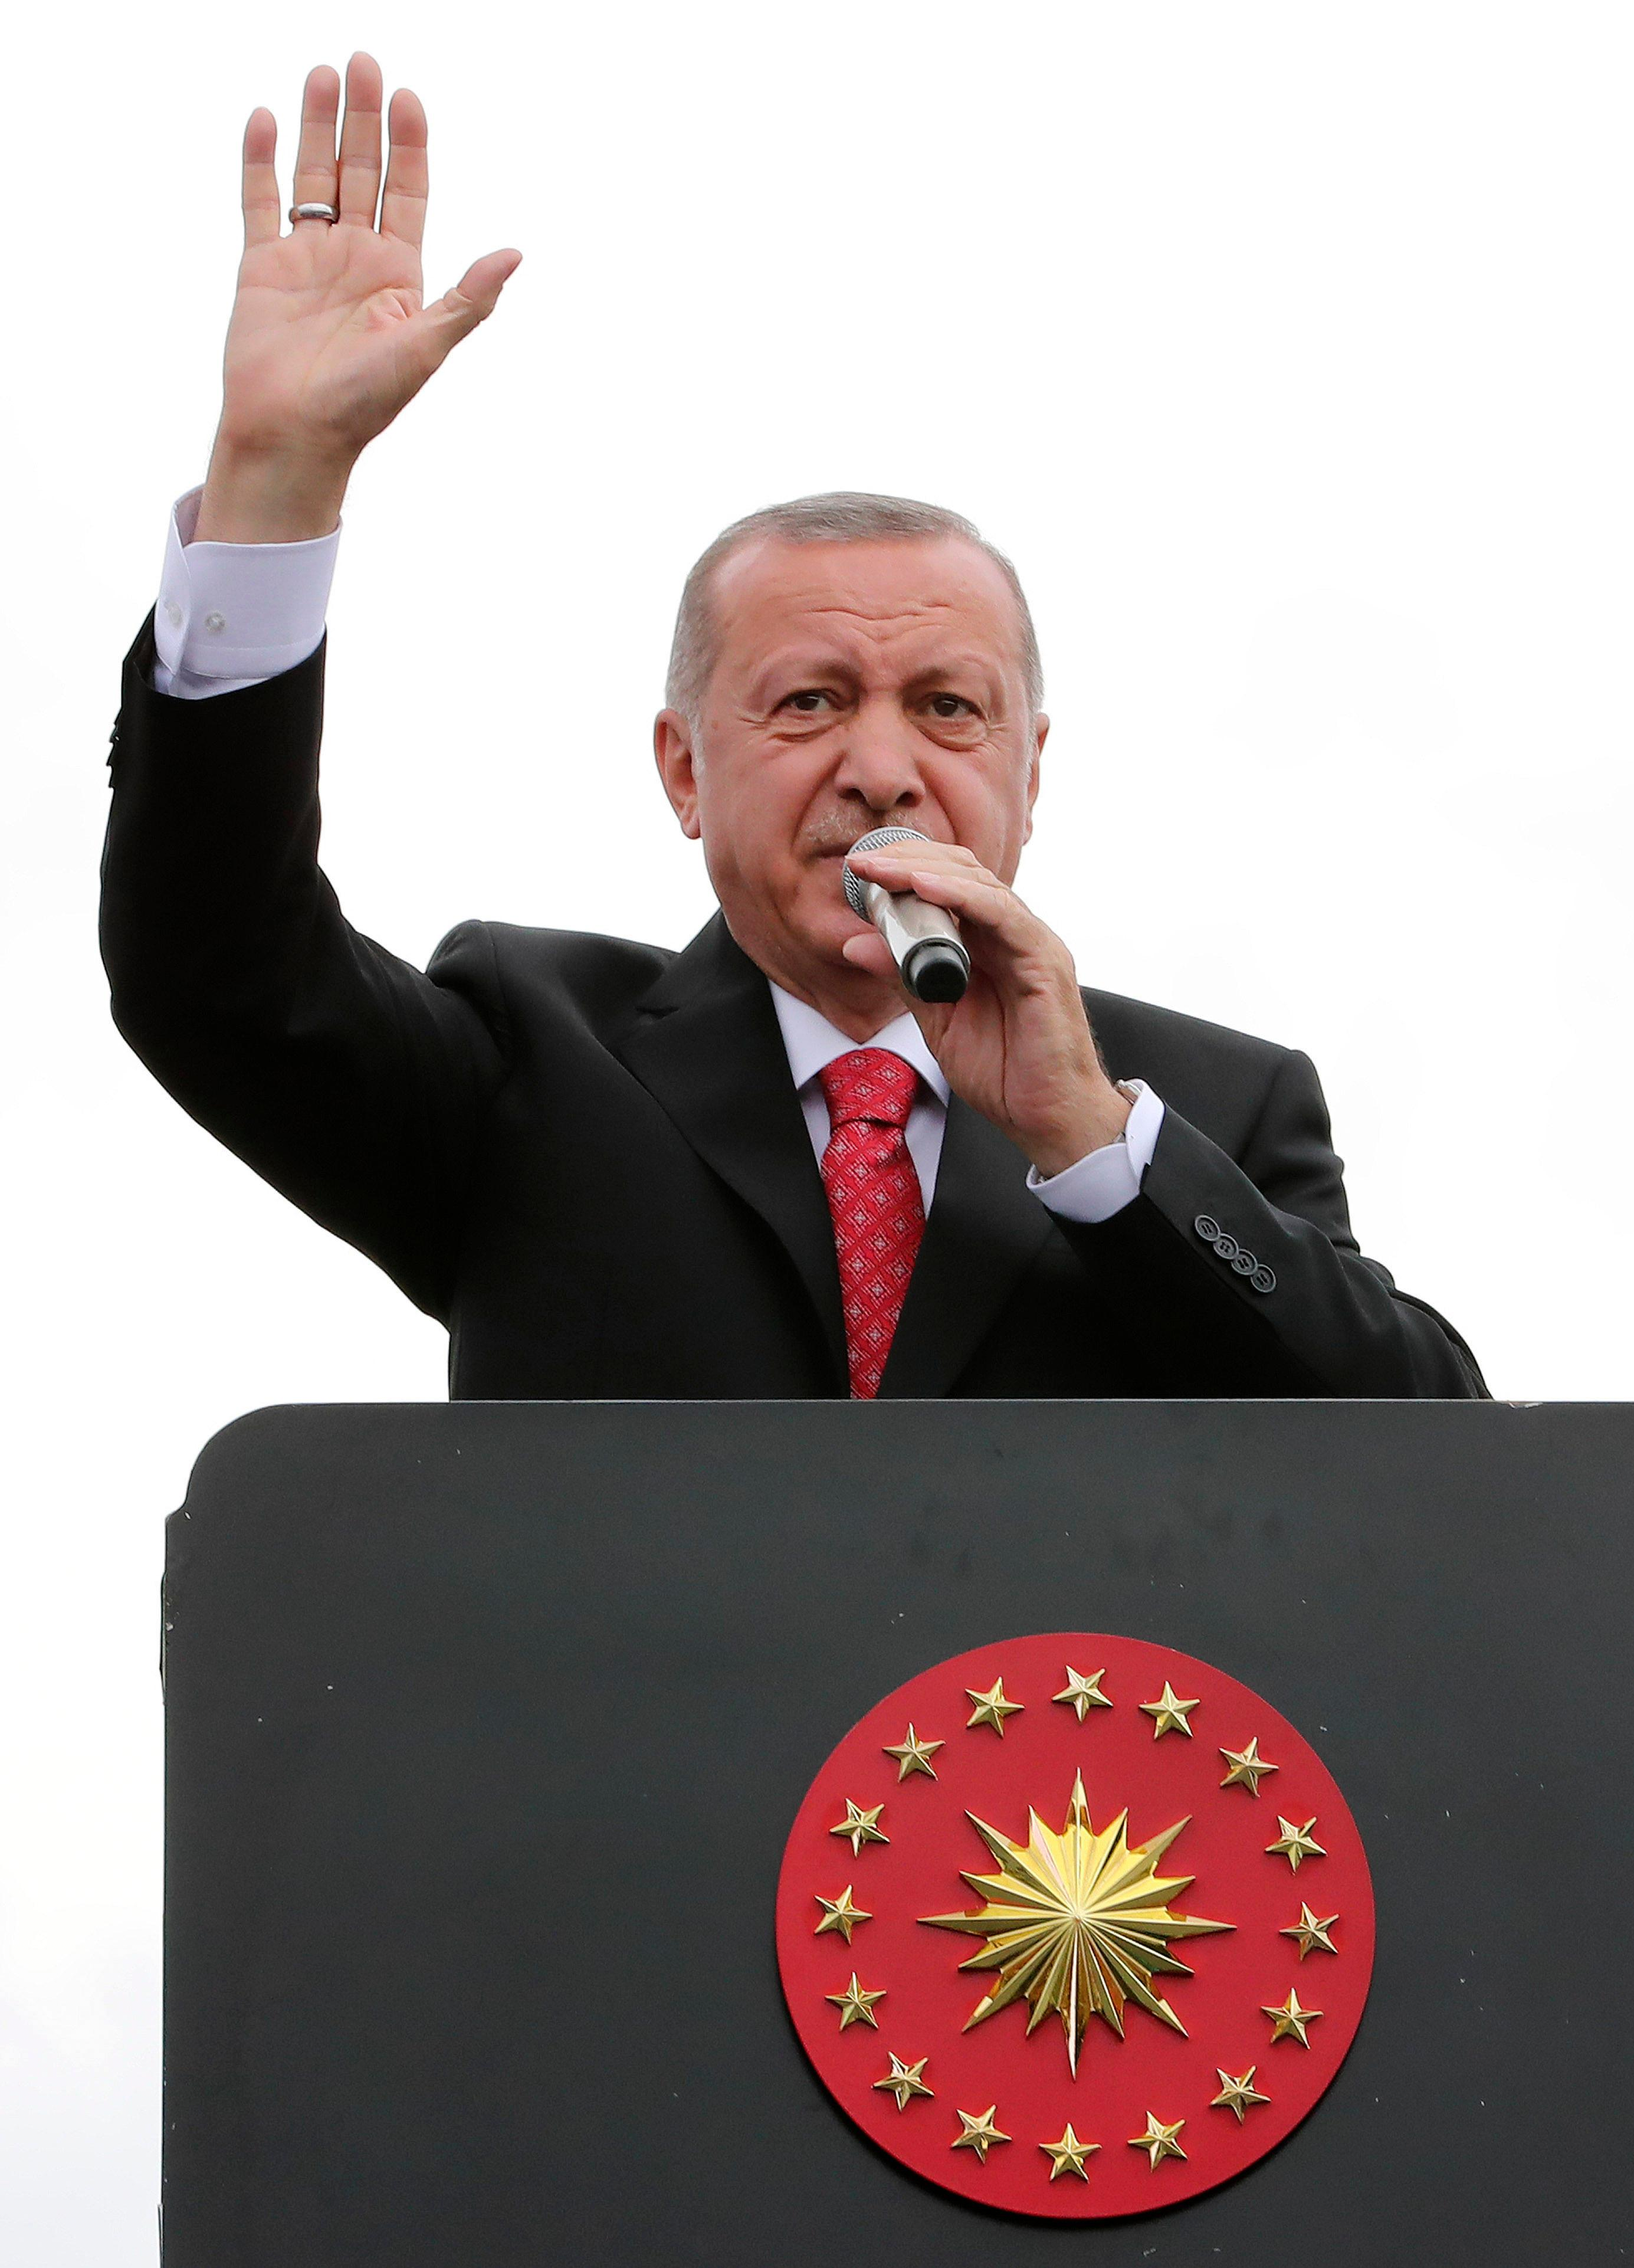 Turkey's President Recep Tayyip Erdogan, gestures as he talks during a campaign rally in Istanbul for the June 23 re-run of Istanbul elections, Wednesday, June 19, 2019. . (Presidential Press Service via AP, Pool)